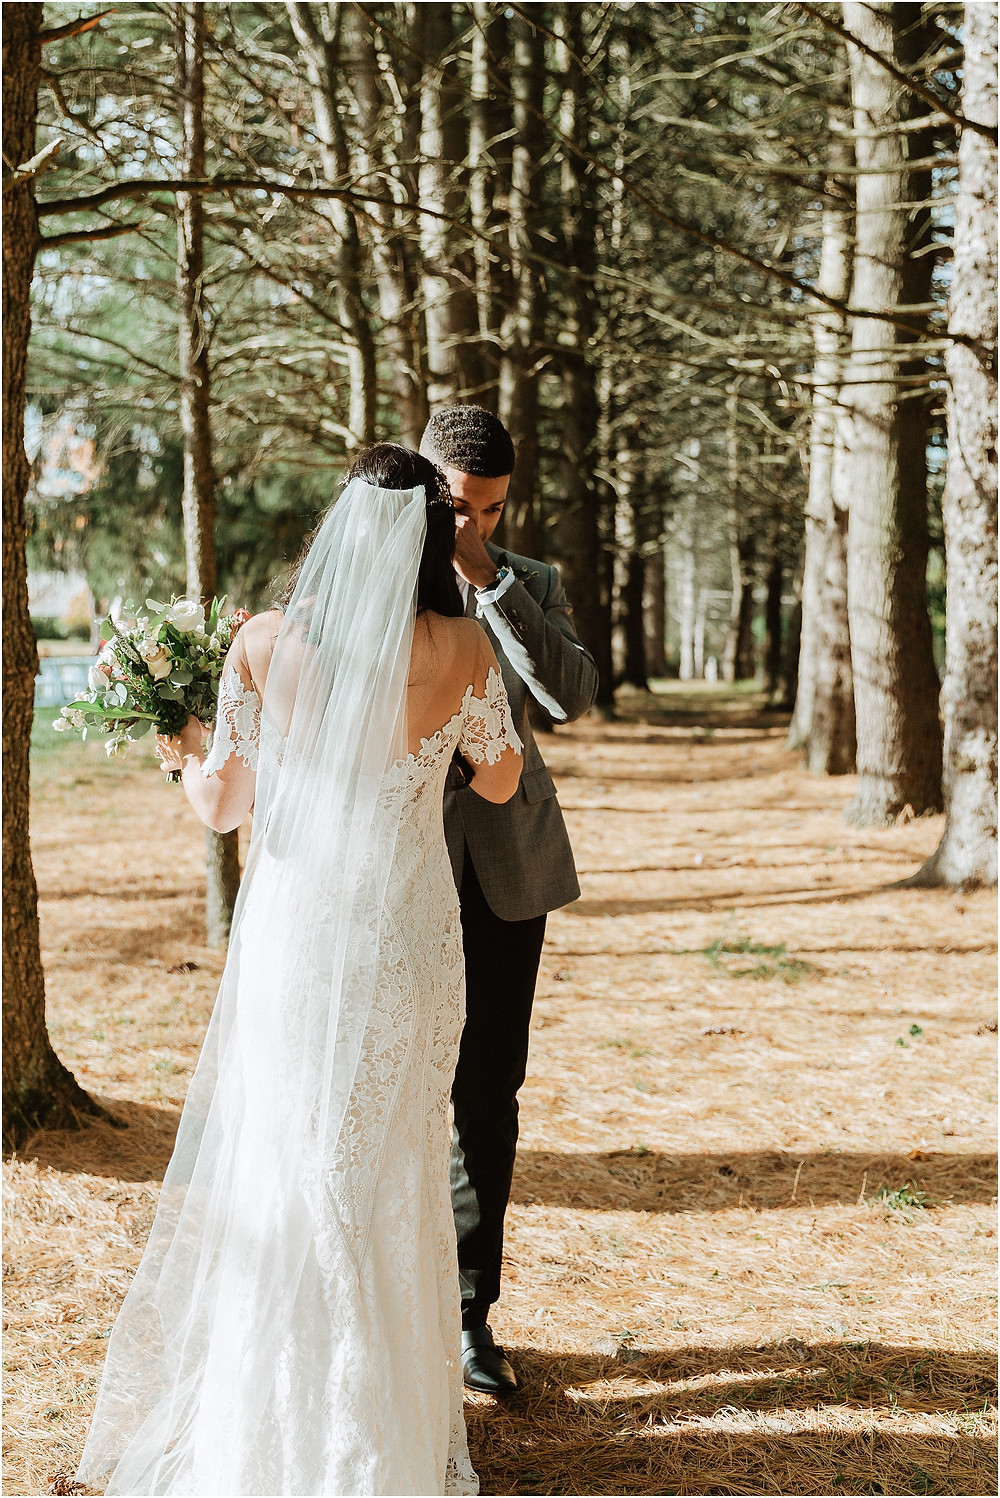 Bride and Groom First Look in the Woods